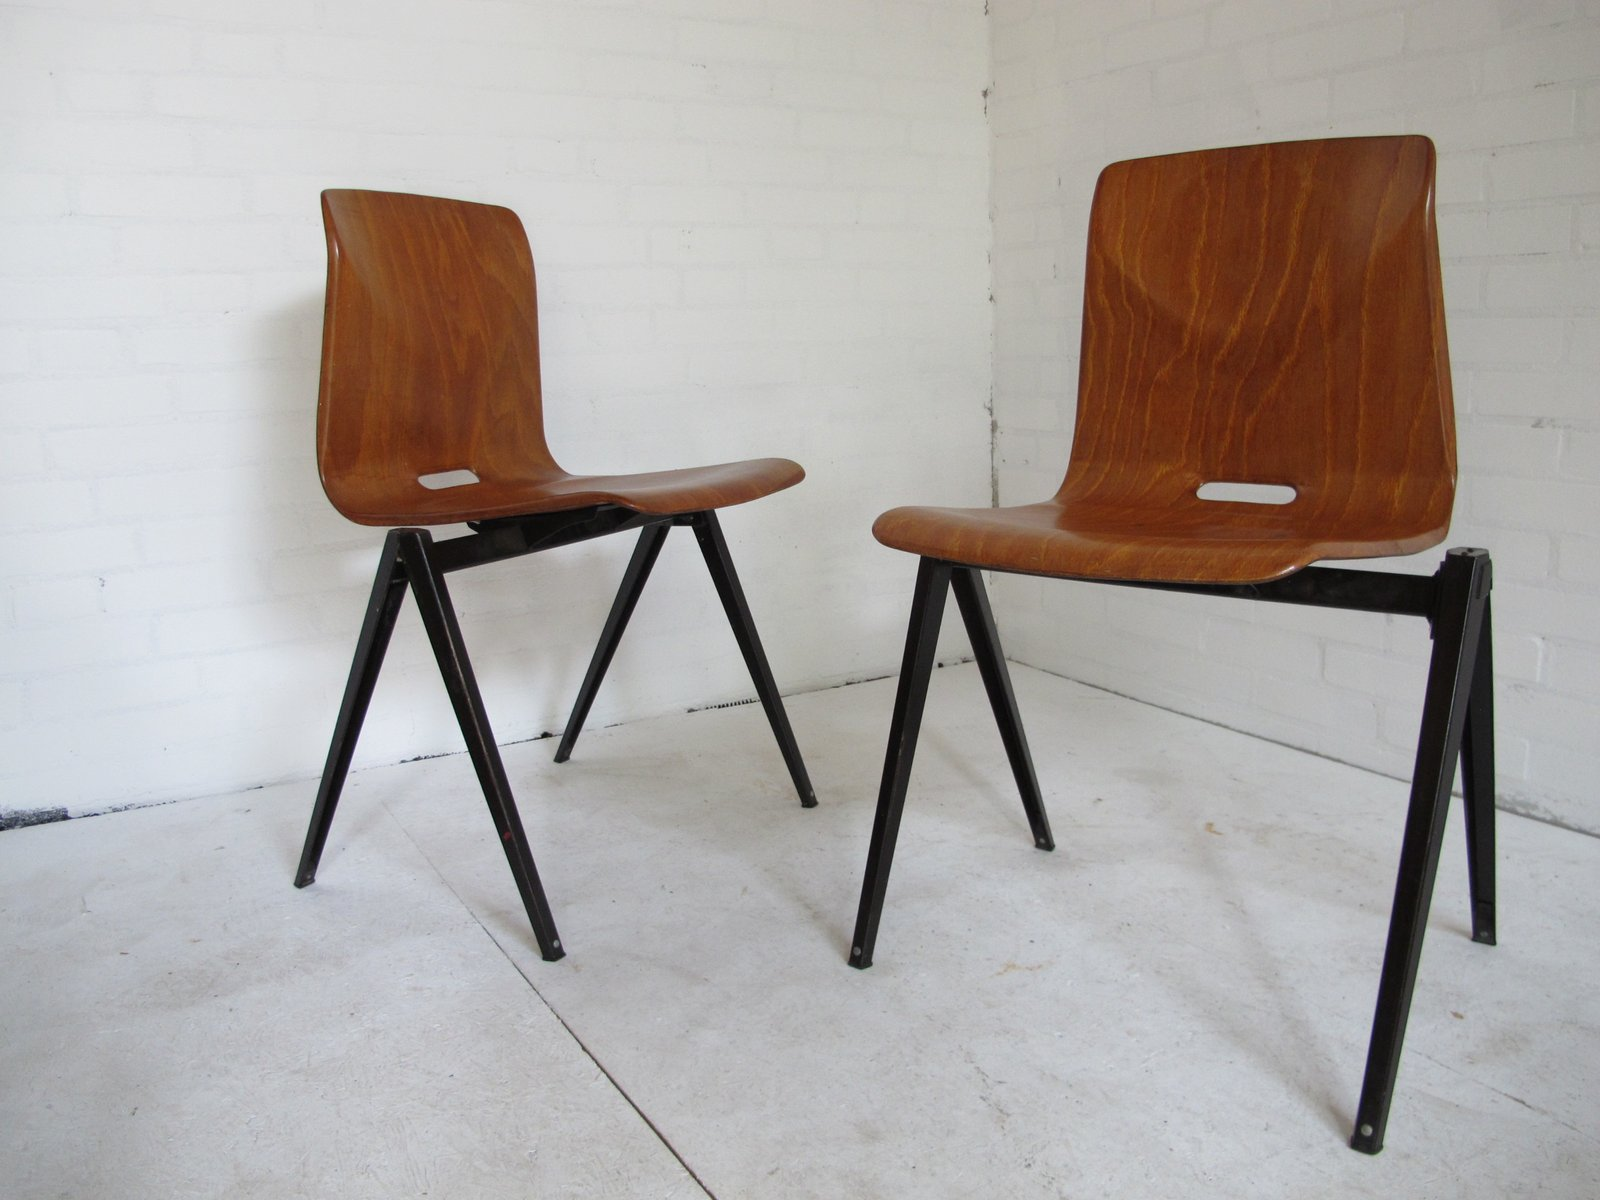 Industrial Vintage Dining Chairs from Galvanitas 1967 Set of 2